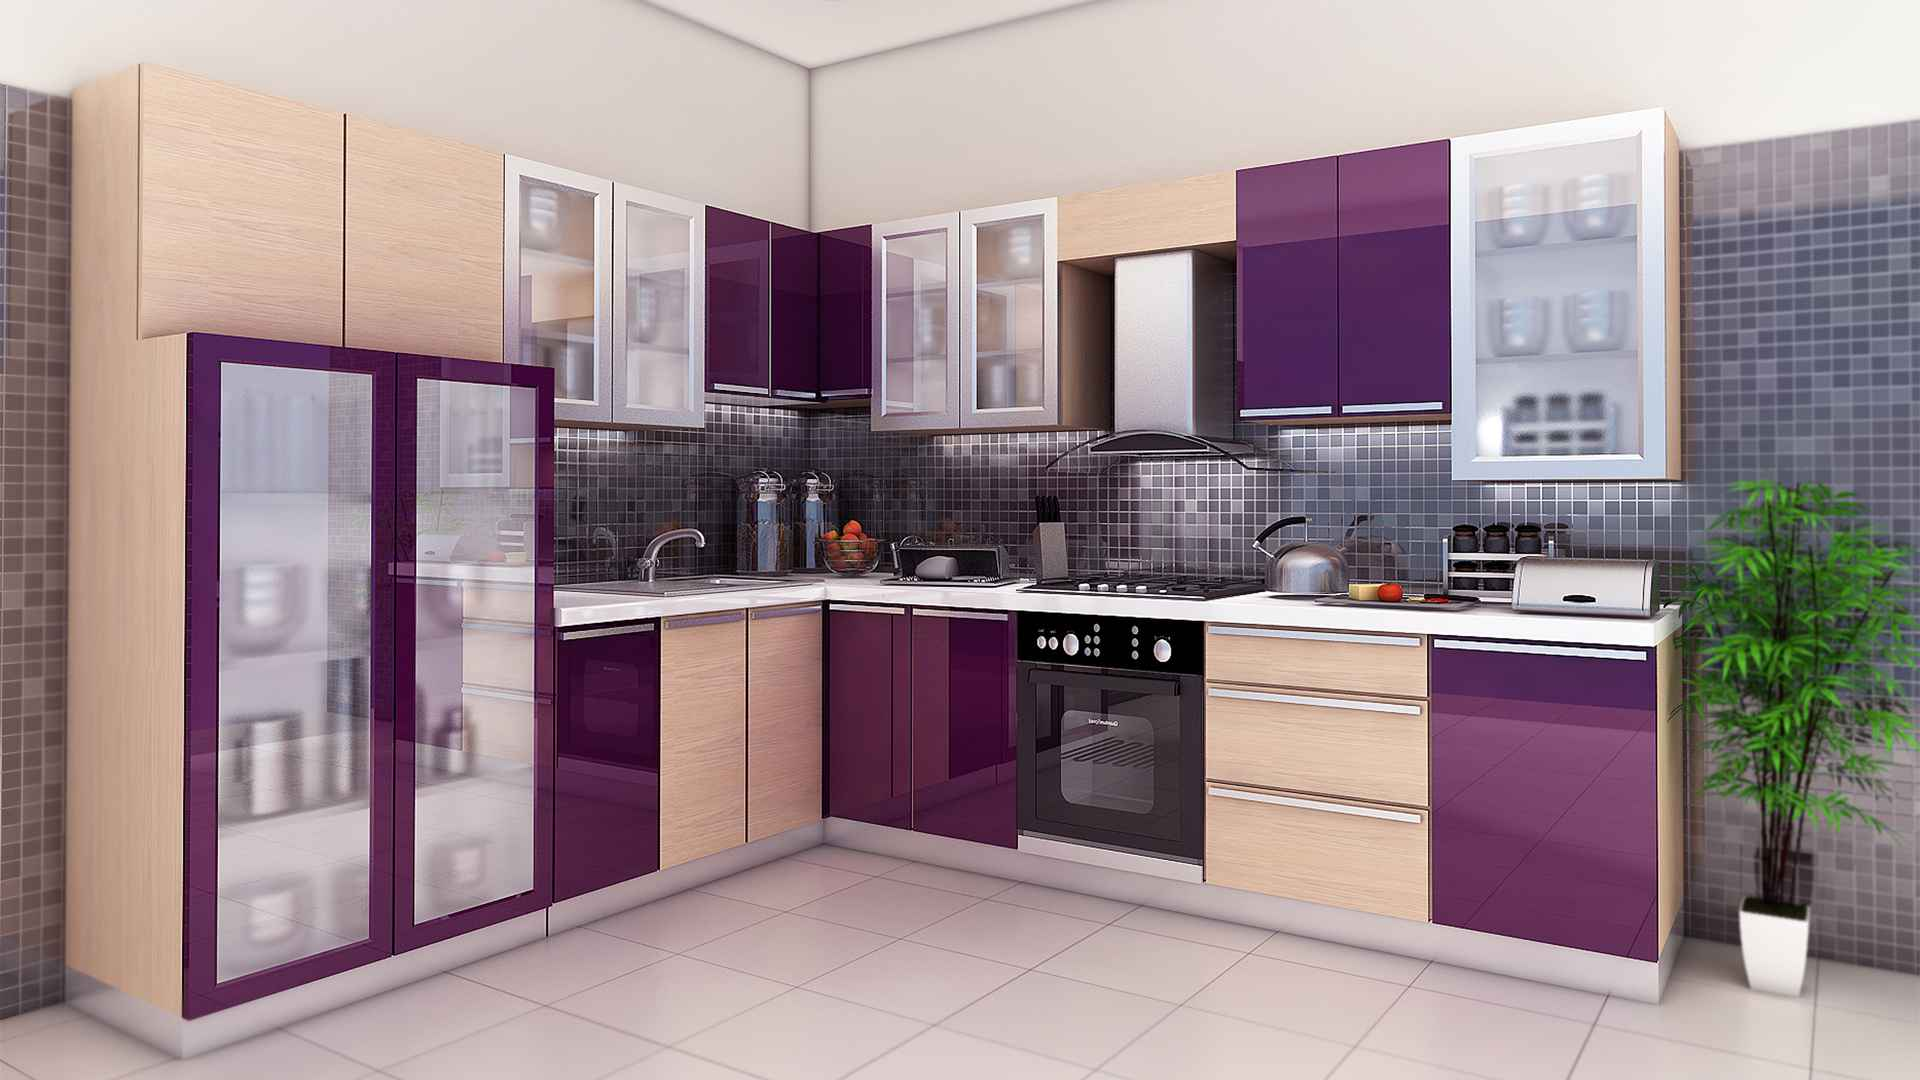 Kitchen Wallpaper 15